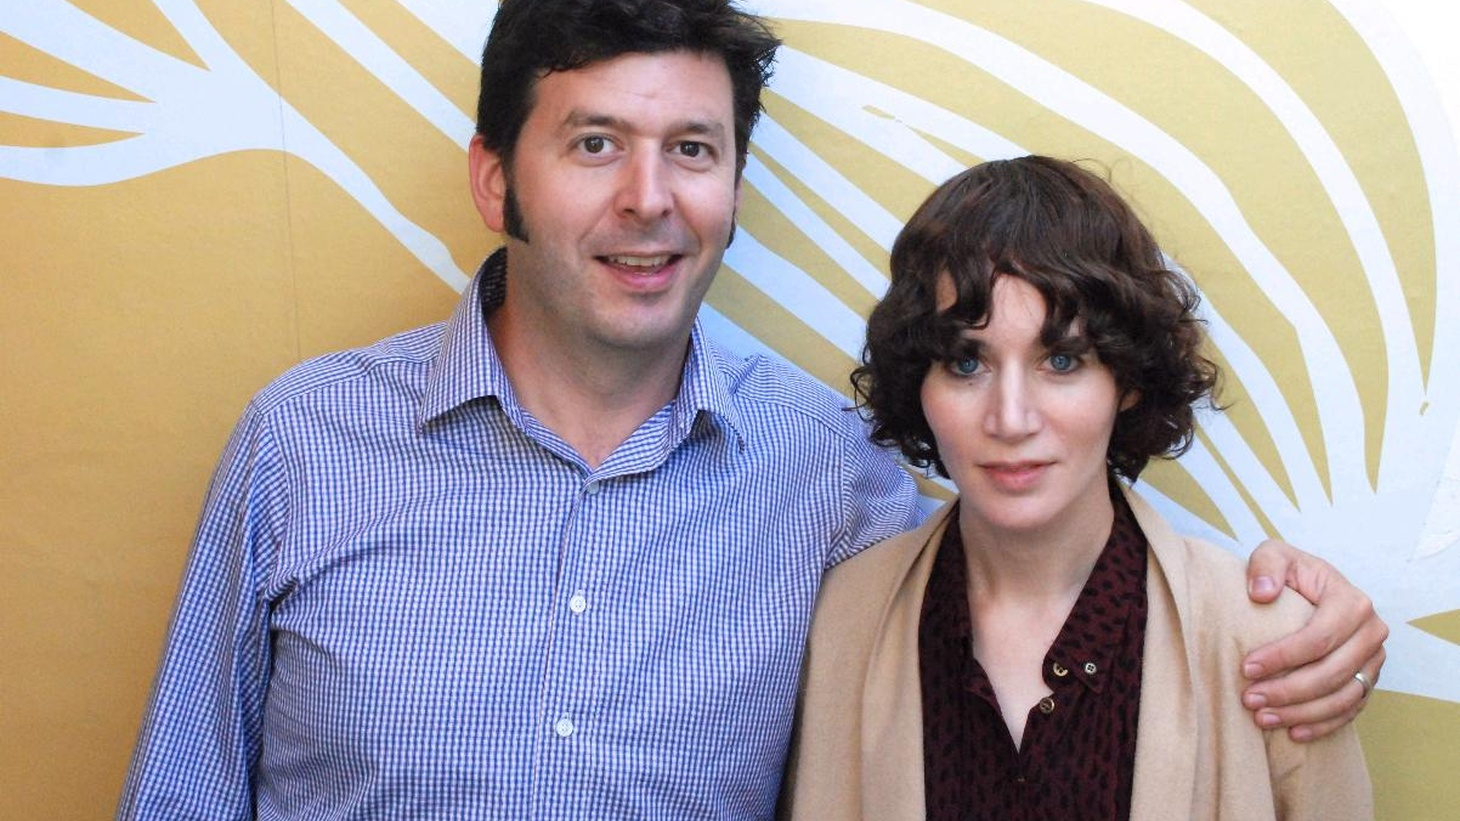 Filmmaker Miranda July is a true original and she gives us a glimpse into her creative process in her Guest DJ set – from the song that inspires her to sit down and write to how she chose music for a key scene in her movie The Future.